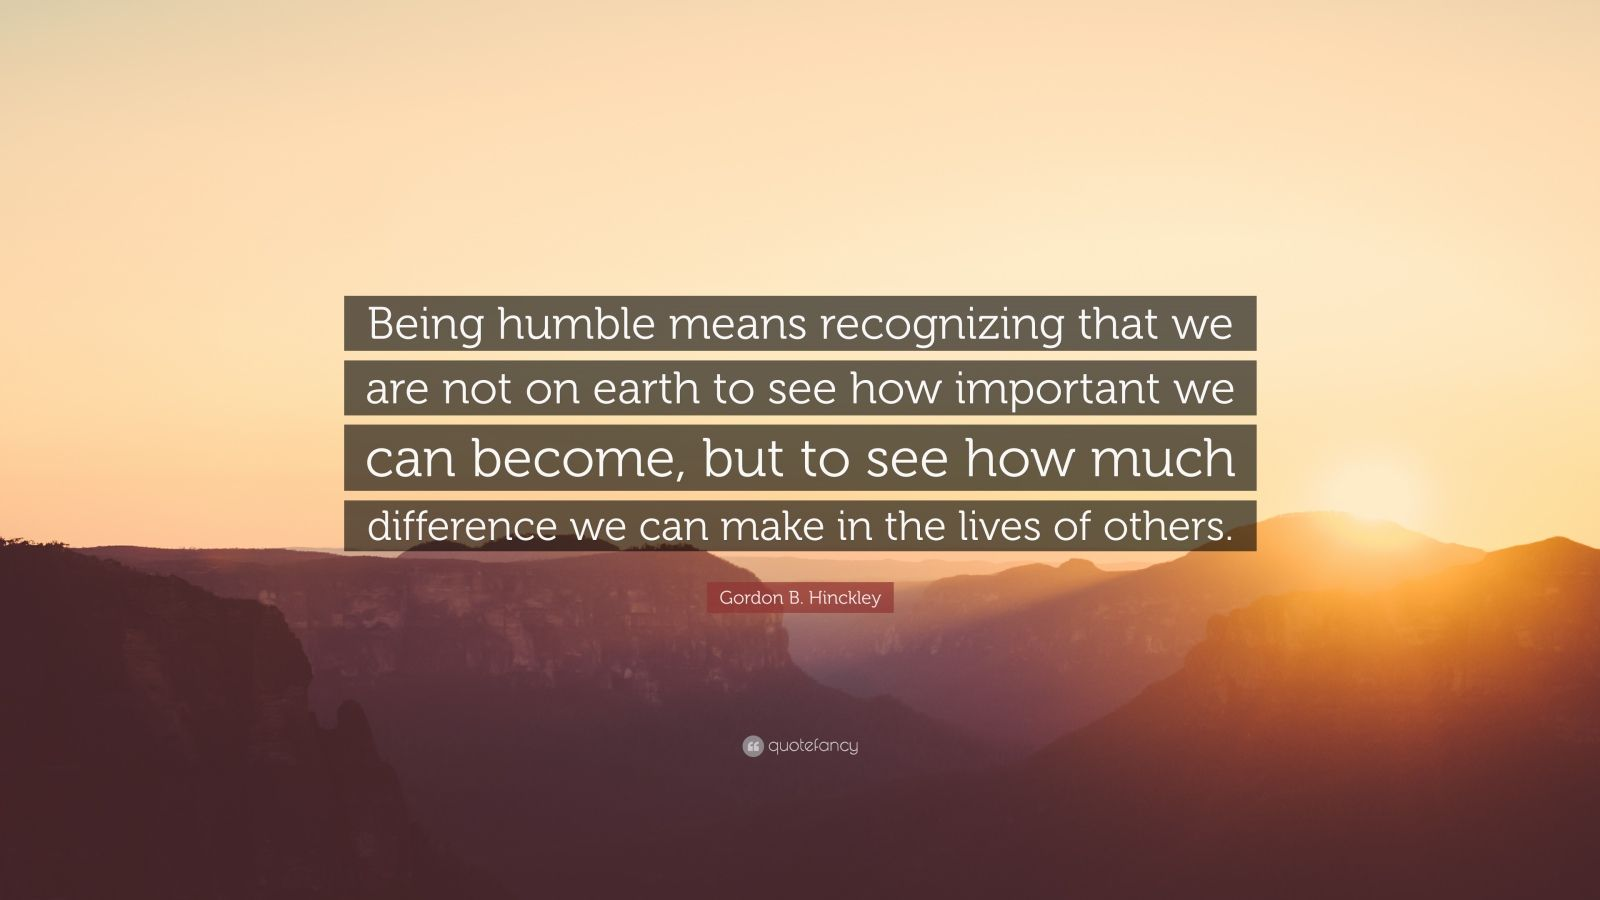 """Gordon B. Hinckley Quote: """"Being humble means recognizing that we are not on earth to see how important we can become, but to see how much difference we can make in the lives of others."""""""